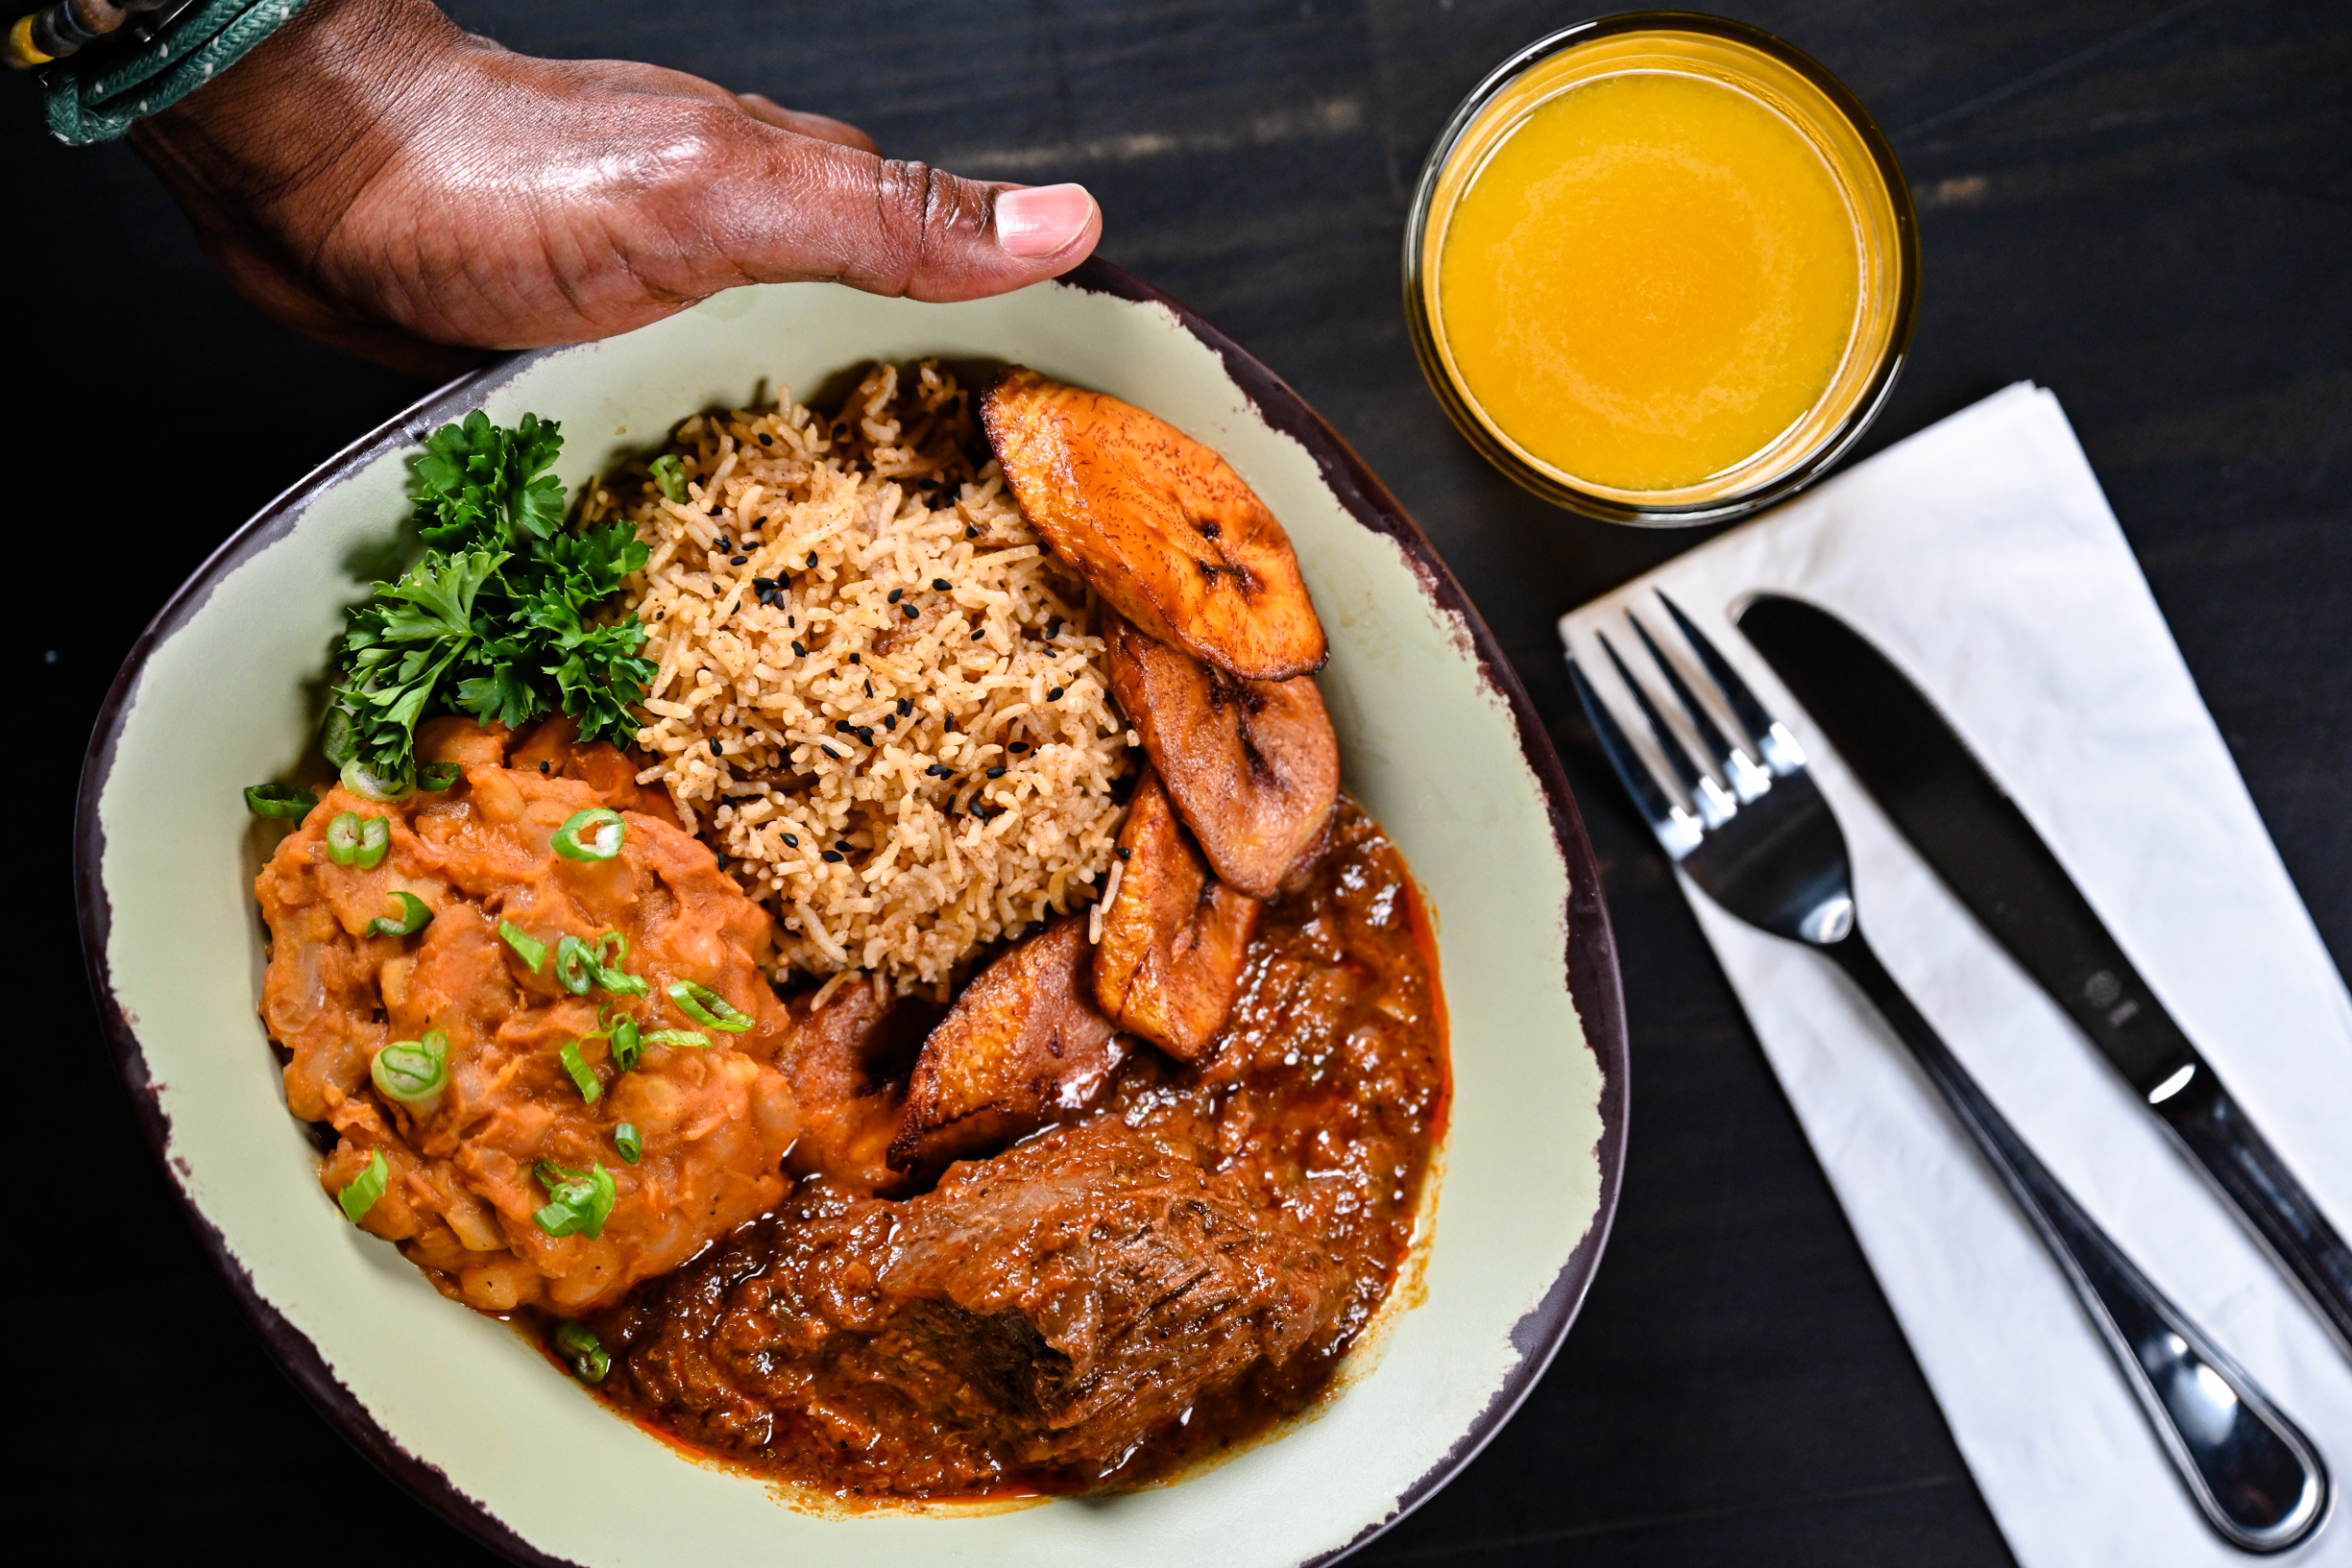 A hand holds a bowl filled with Nyumbani filled with several stews and slice plantains with a glass of yellow fruit juice next to it.